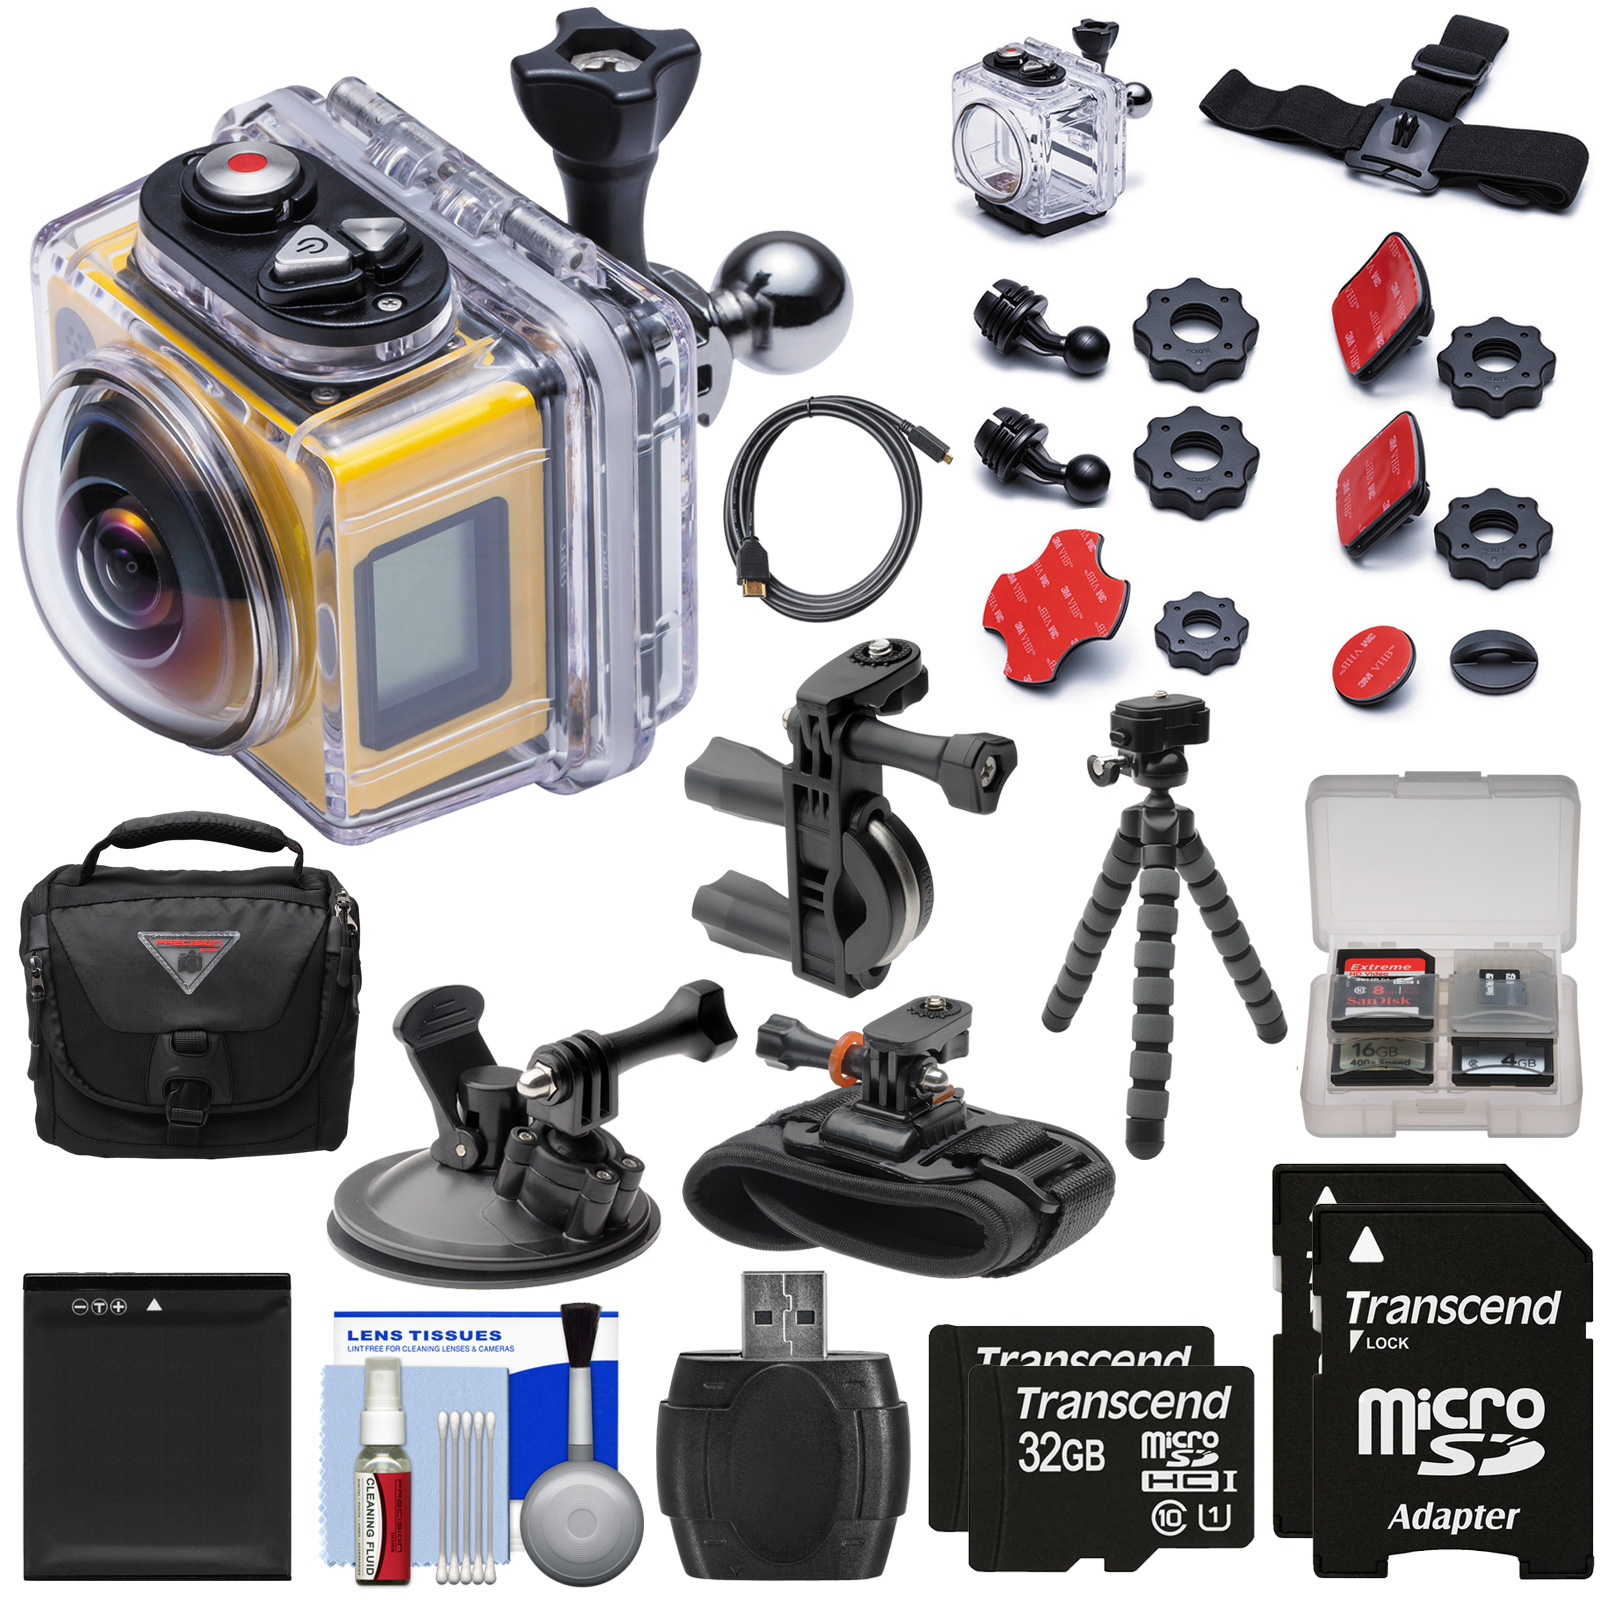 Kodak PixPro SP360 Wi-Fi HD Video Action Camera Camcorder Aqua Sport + Handlebar, Wrist & Suction Cup Mounts + 64GBs + Battery + Case + Tripod Kit